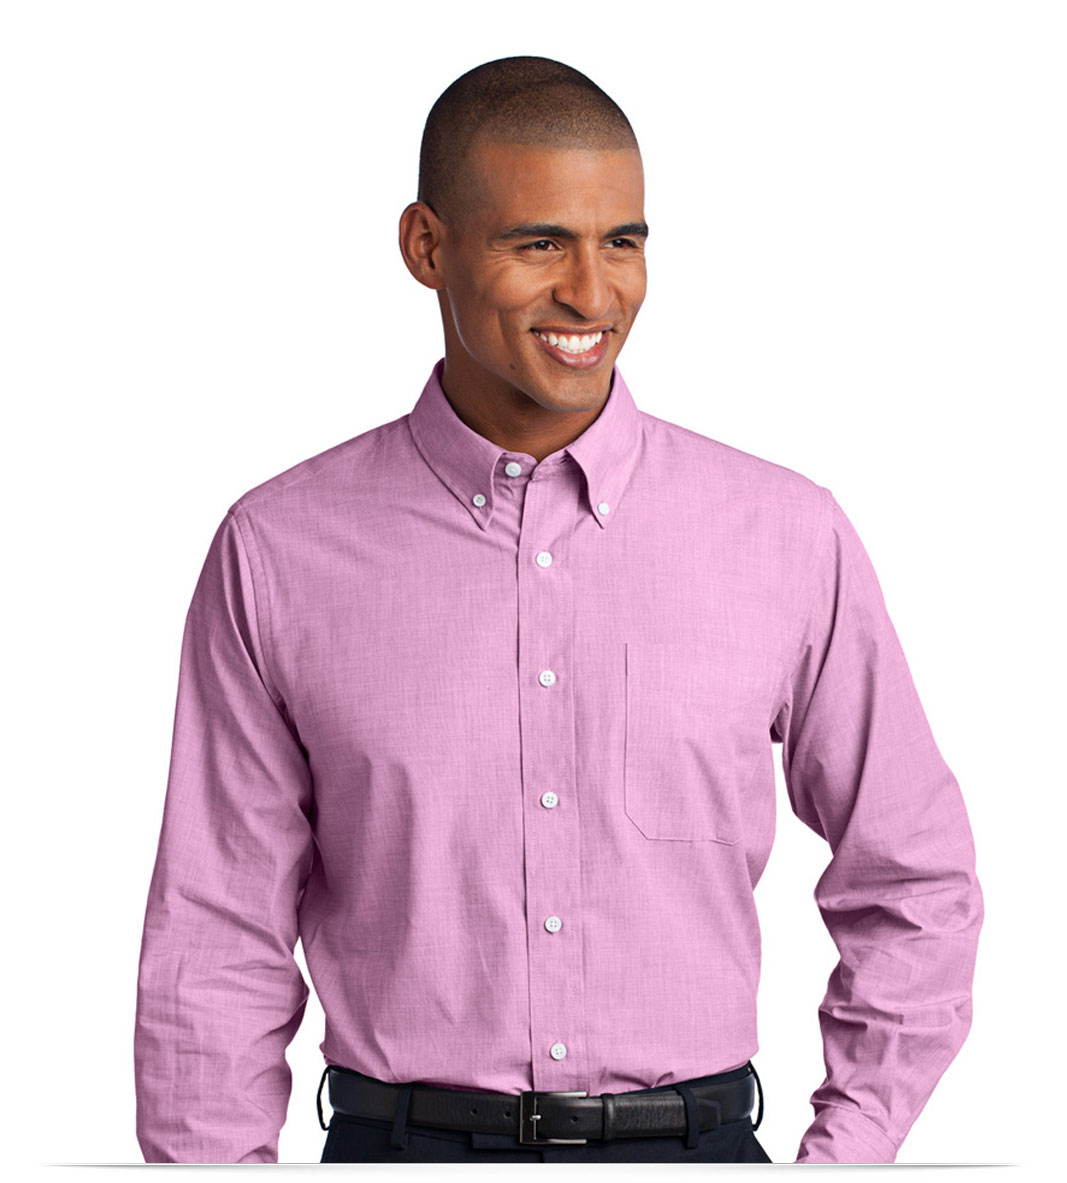 Men's Easy Care Shirt With Personalized Logo